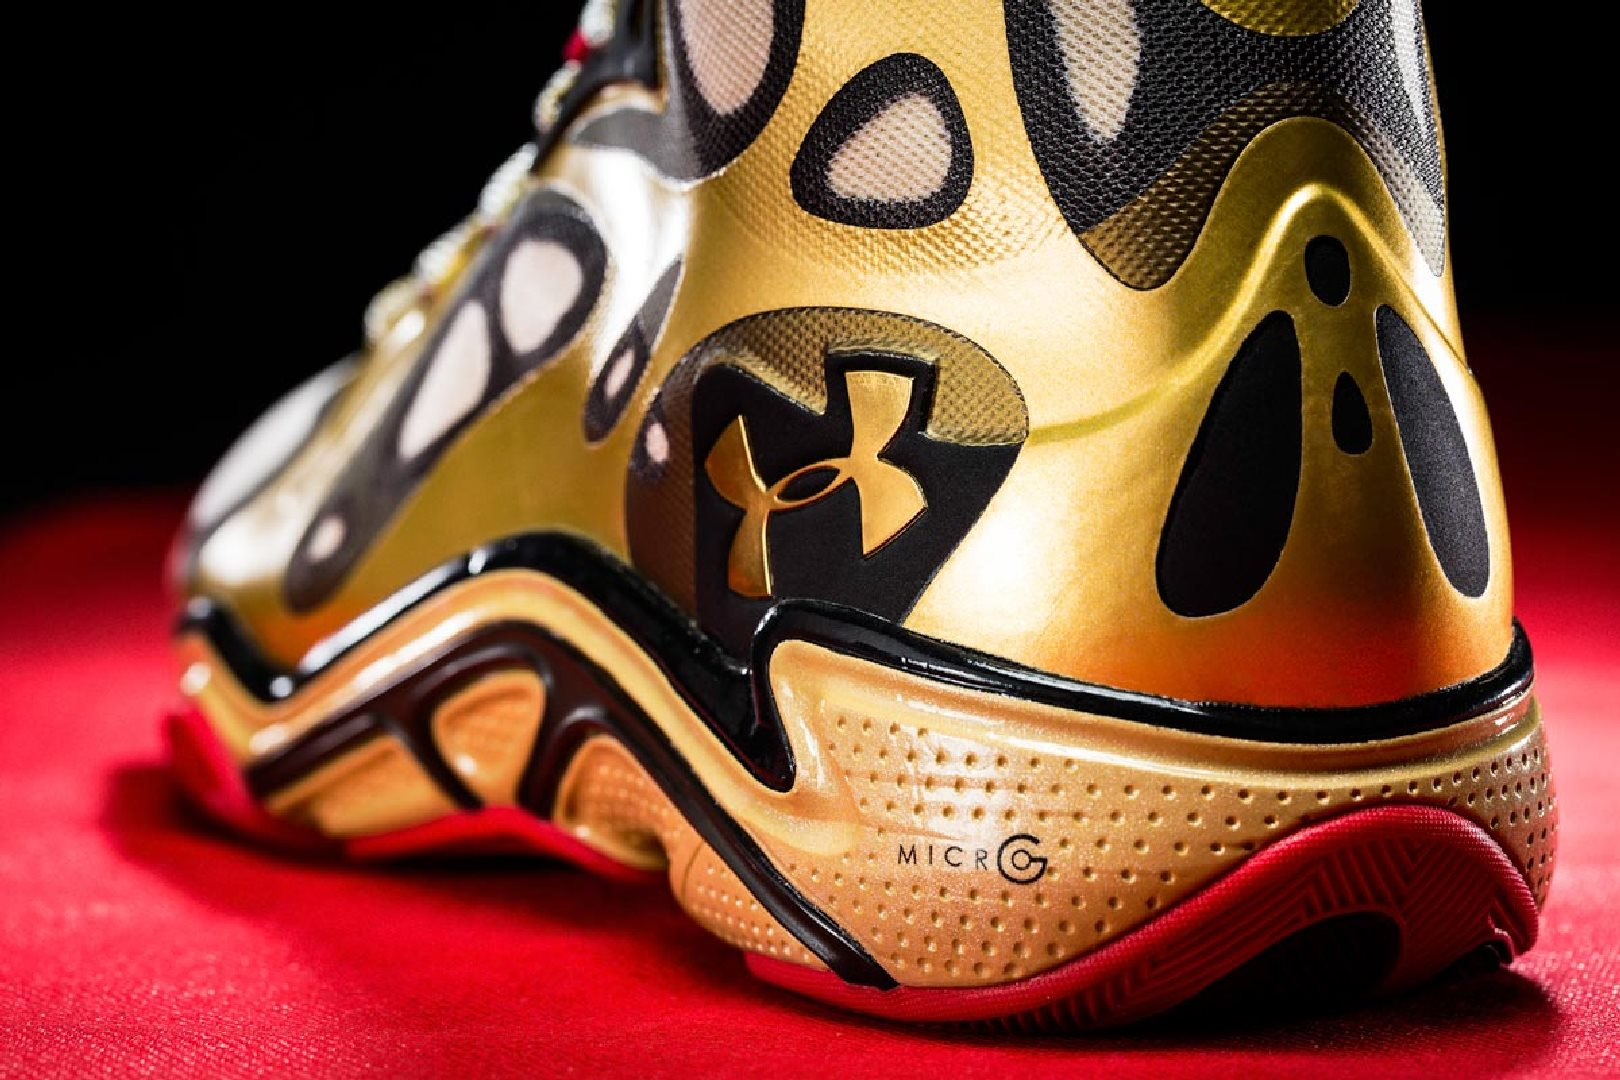 28+] Stephen Curry Shoes Wallpapers on